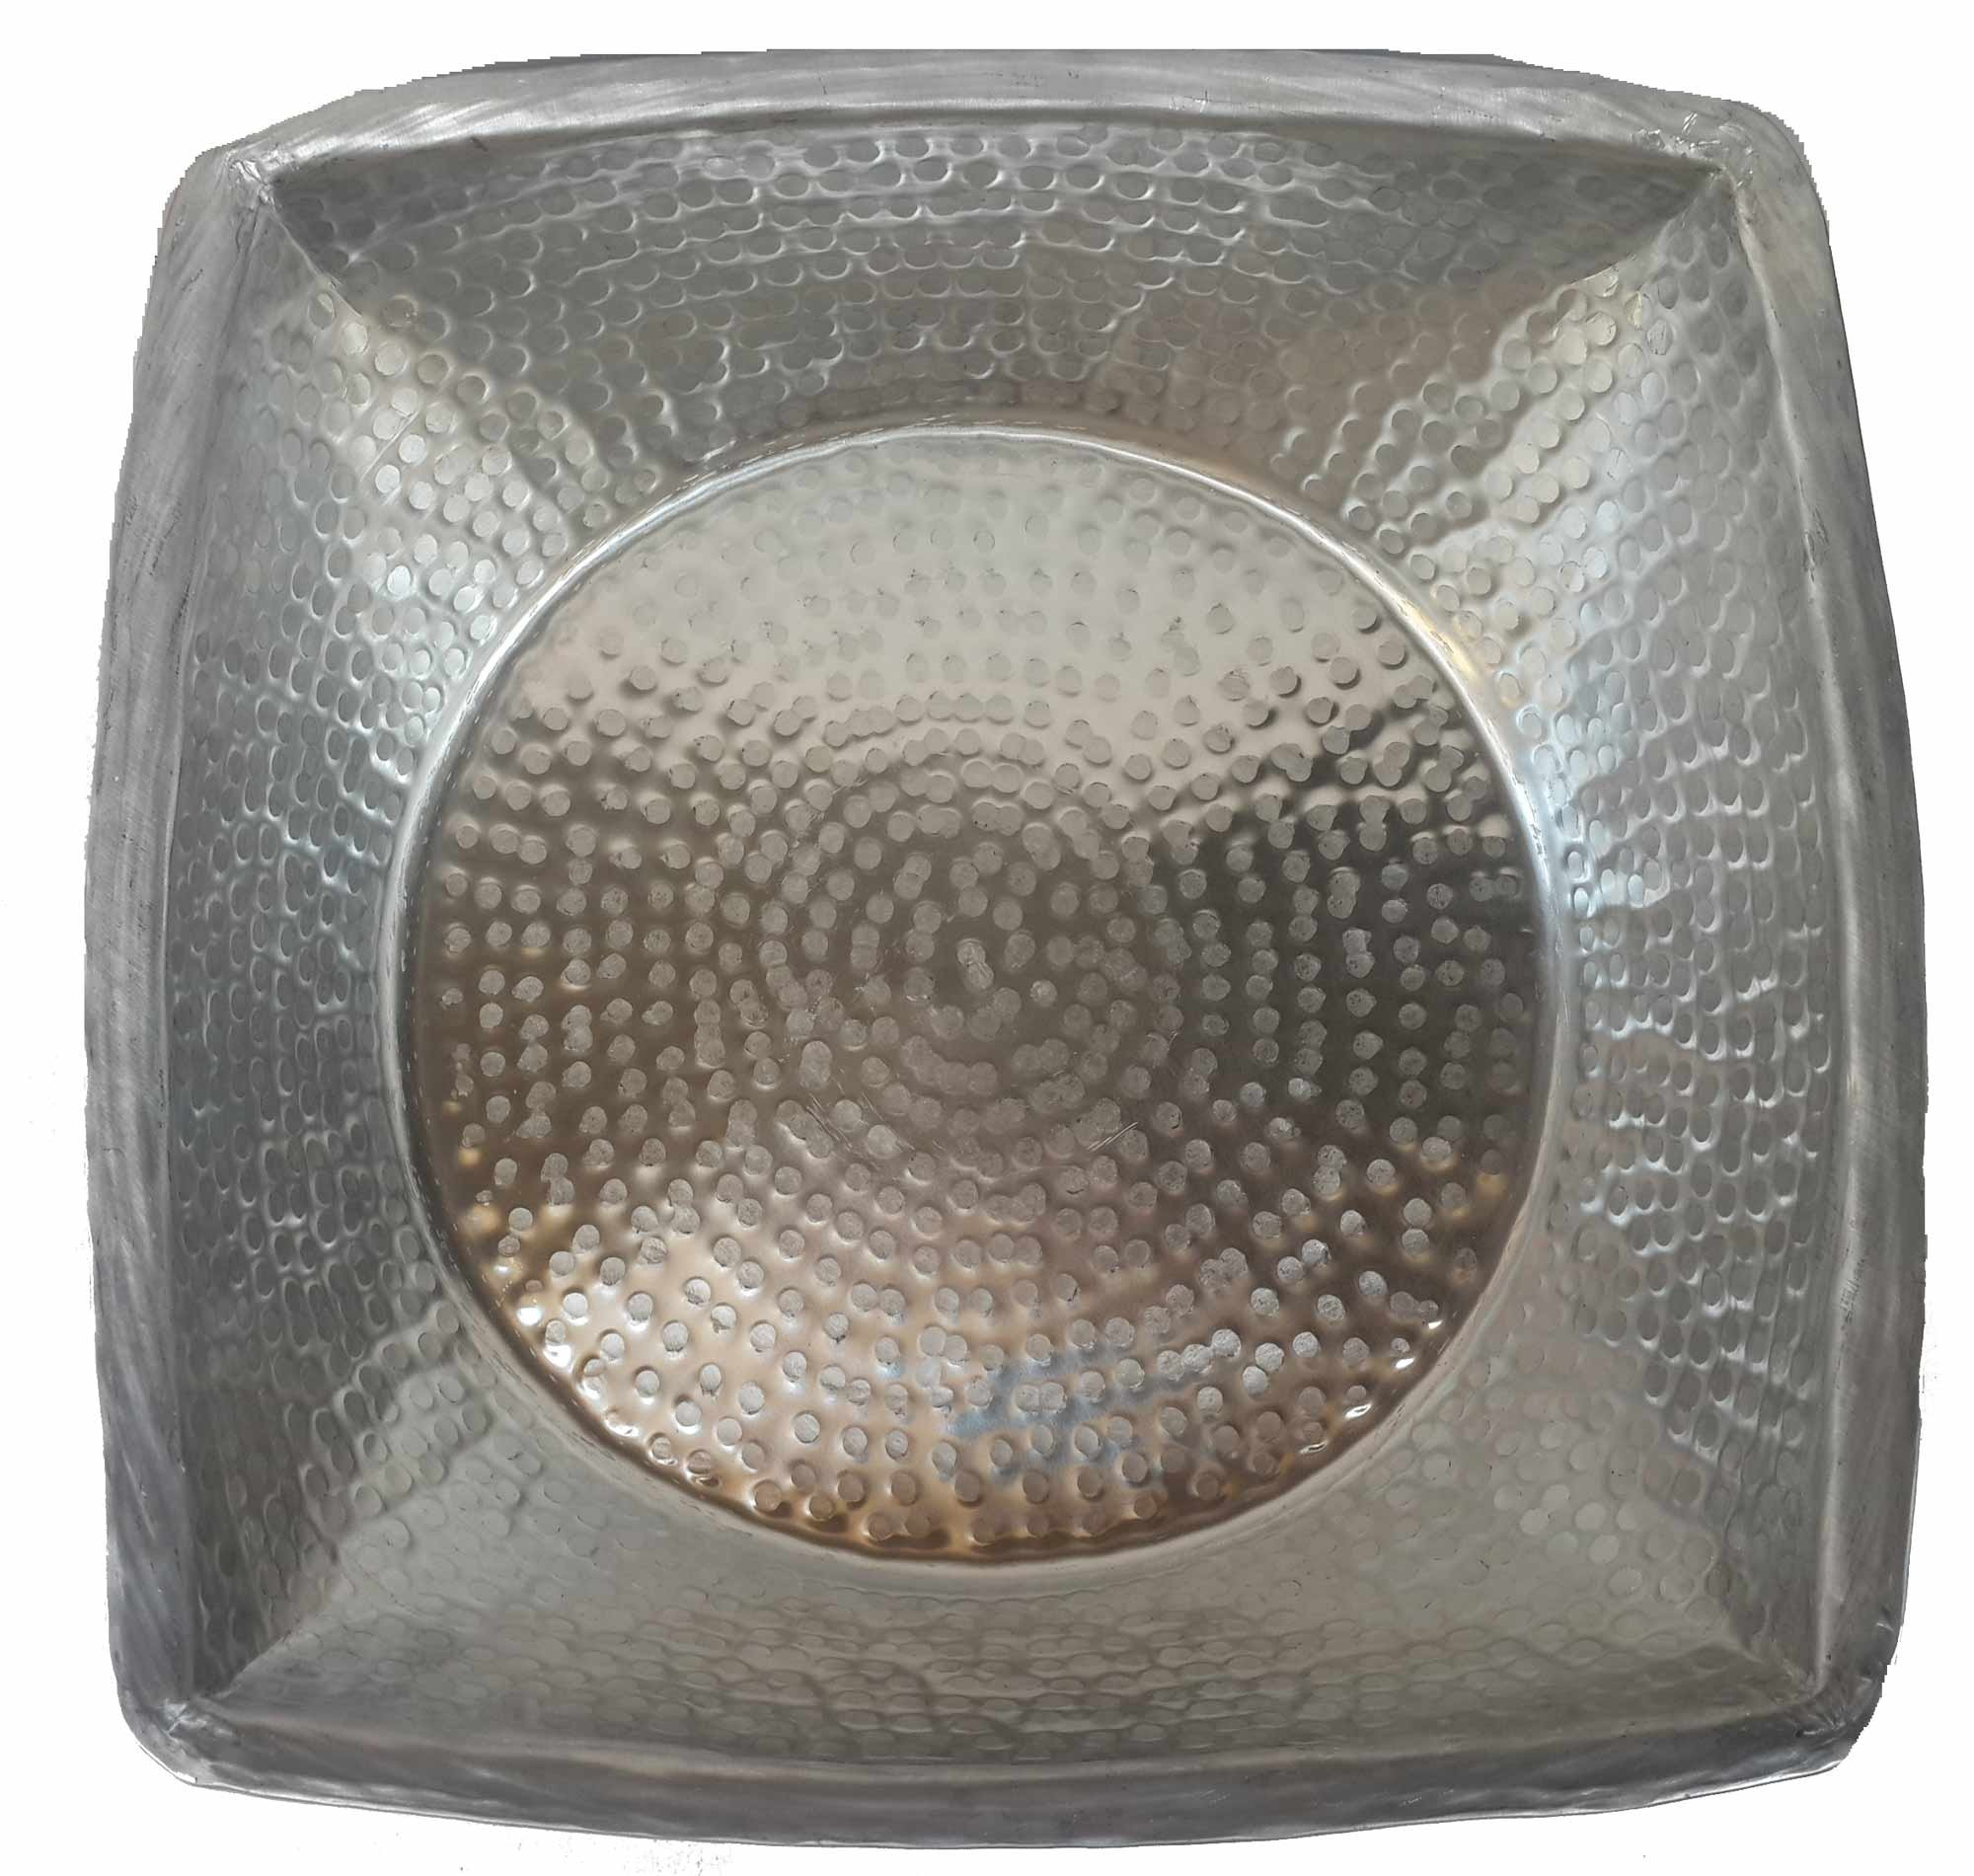 Egypt gift shops Hand Hammered Square Light Weight Silver Foot Wash Massage Spa Cleansing Bathtub Basin Beauty Salon Pedicure Relax Skin Toes Care by Egypt gift shops (Image #3)